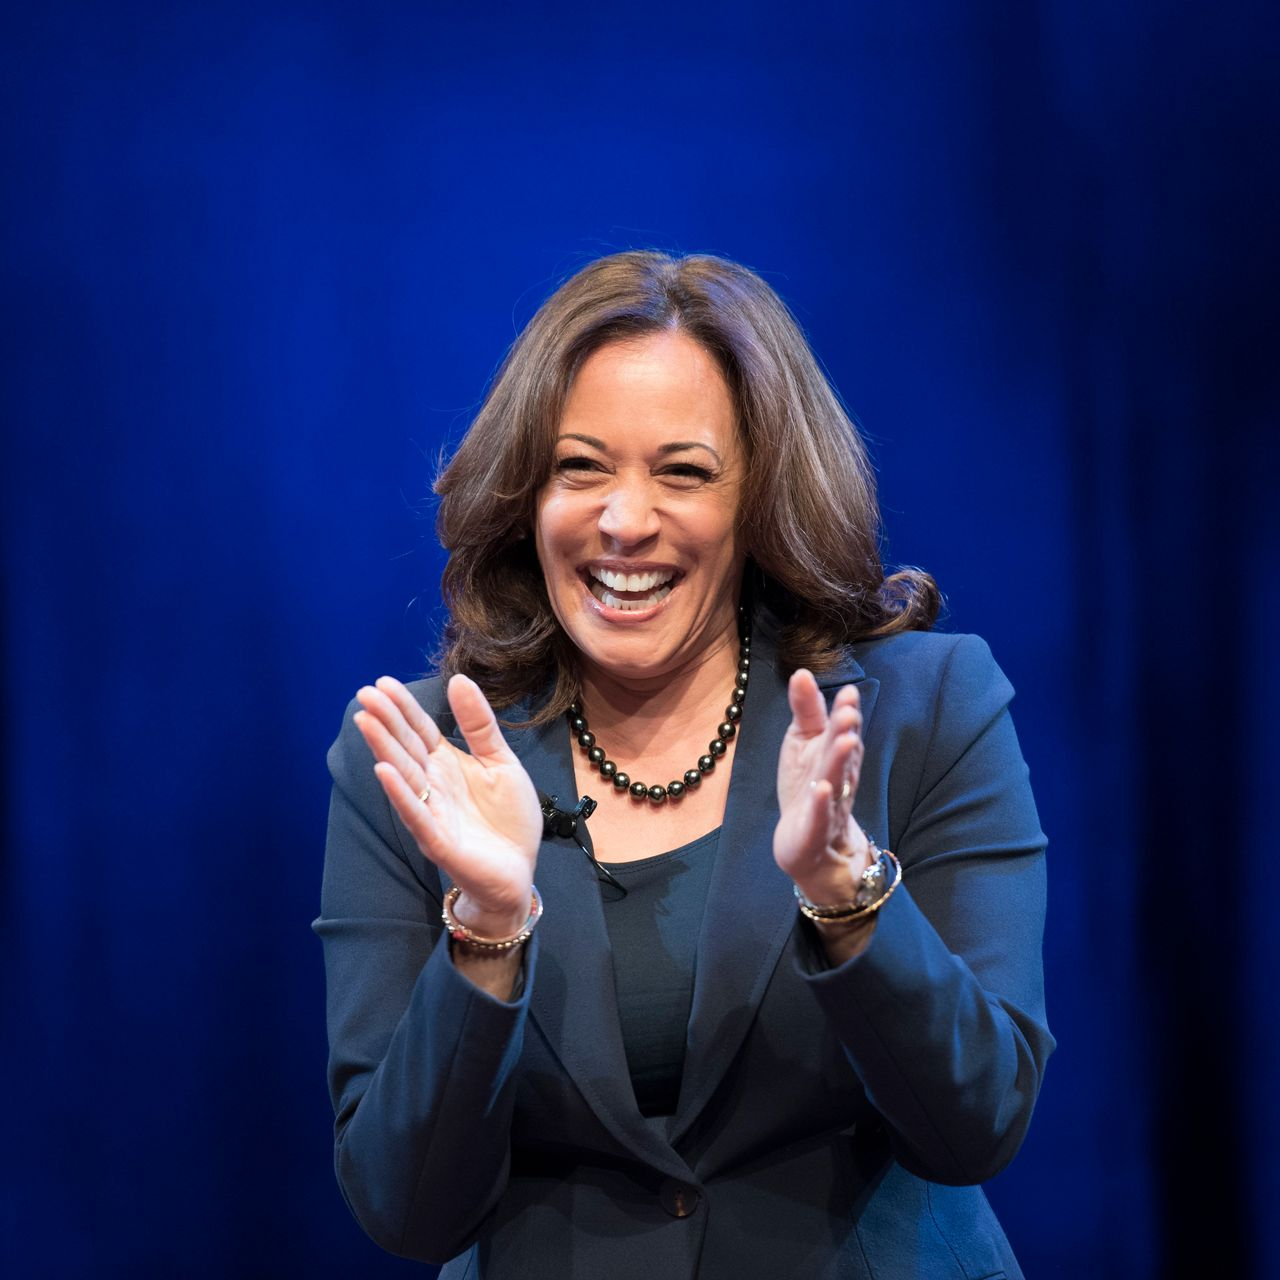 lasentinel.net: The Life of Kamala Harris Represents Preliminary Steps for Change - Los Angeles Sentinel